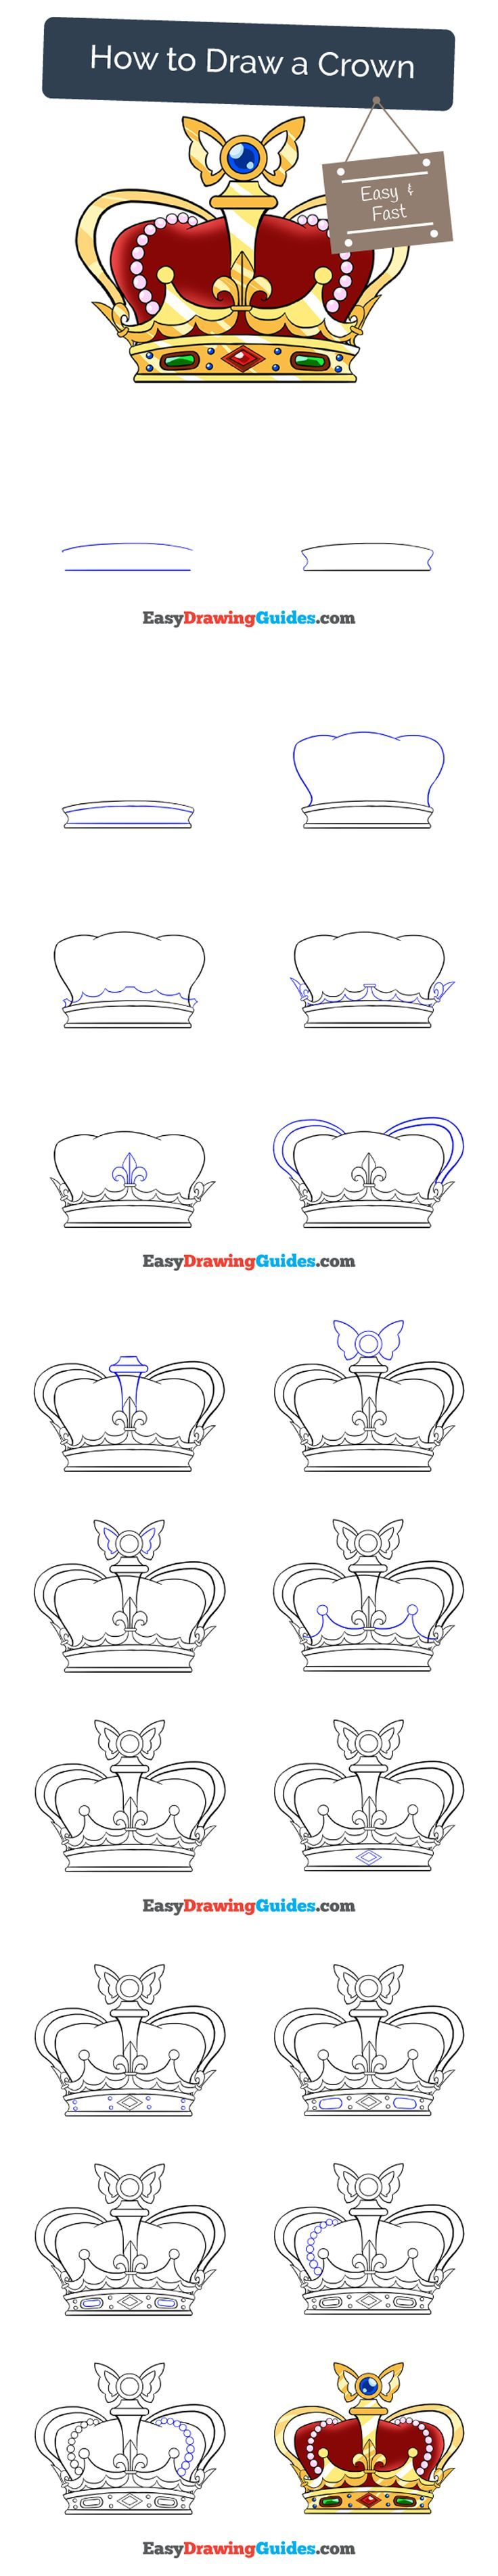 learn how to draw a crown easy step by step drawing tutorial for